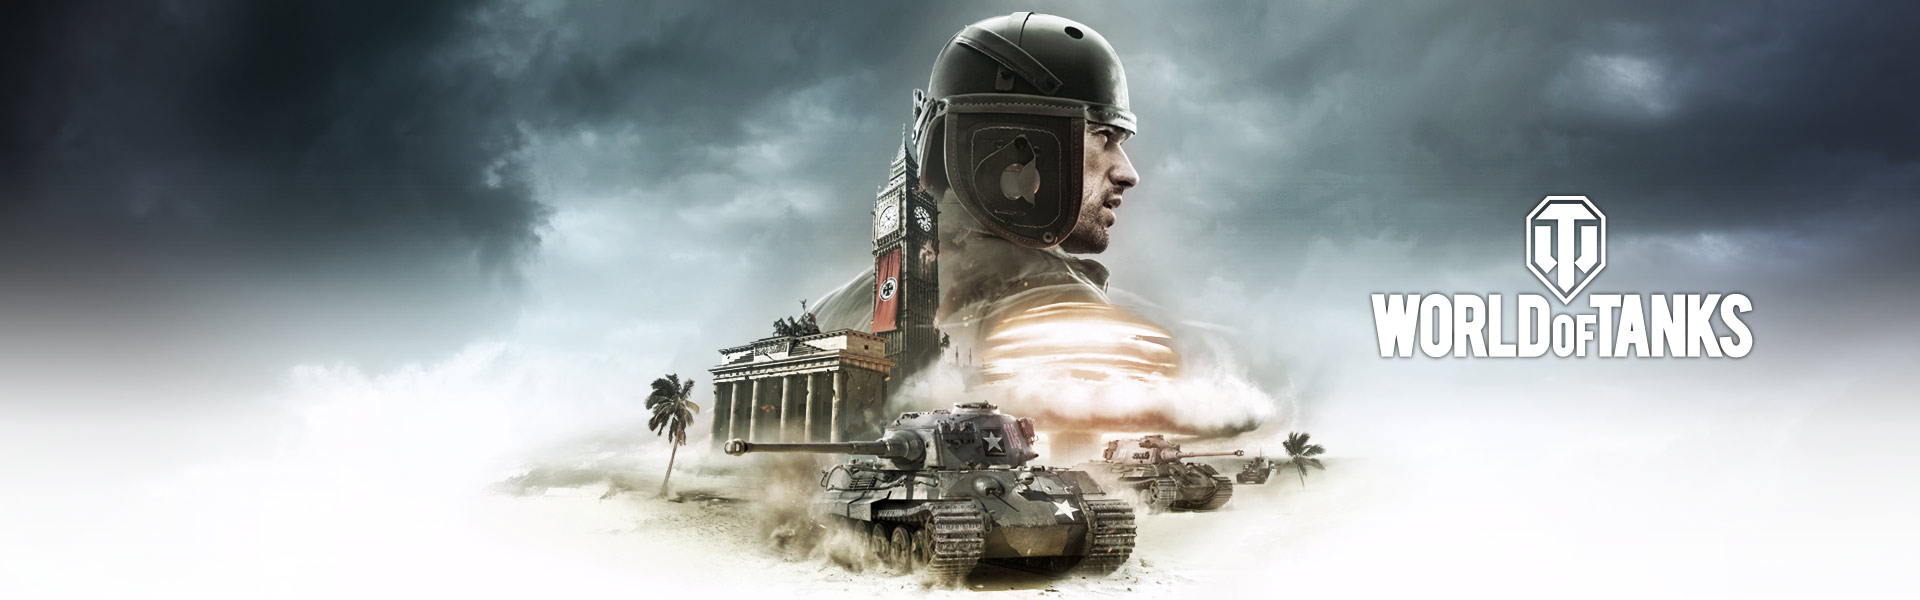 World of Tanks: multiple tanks move in front of a building on a beach with a large image of a man in the background